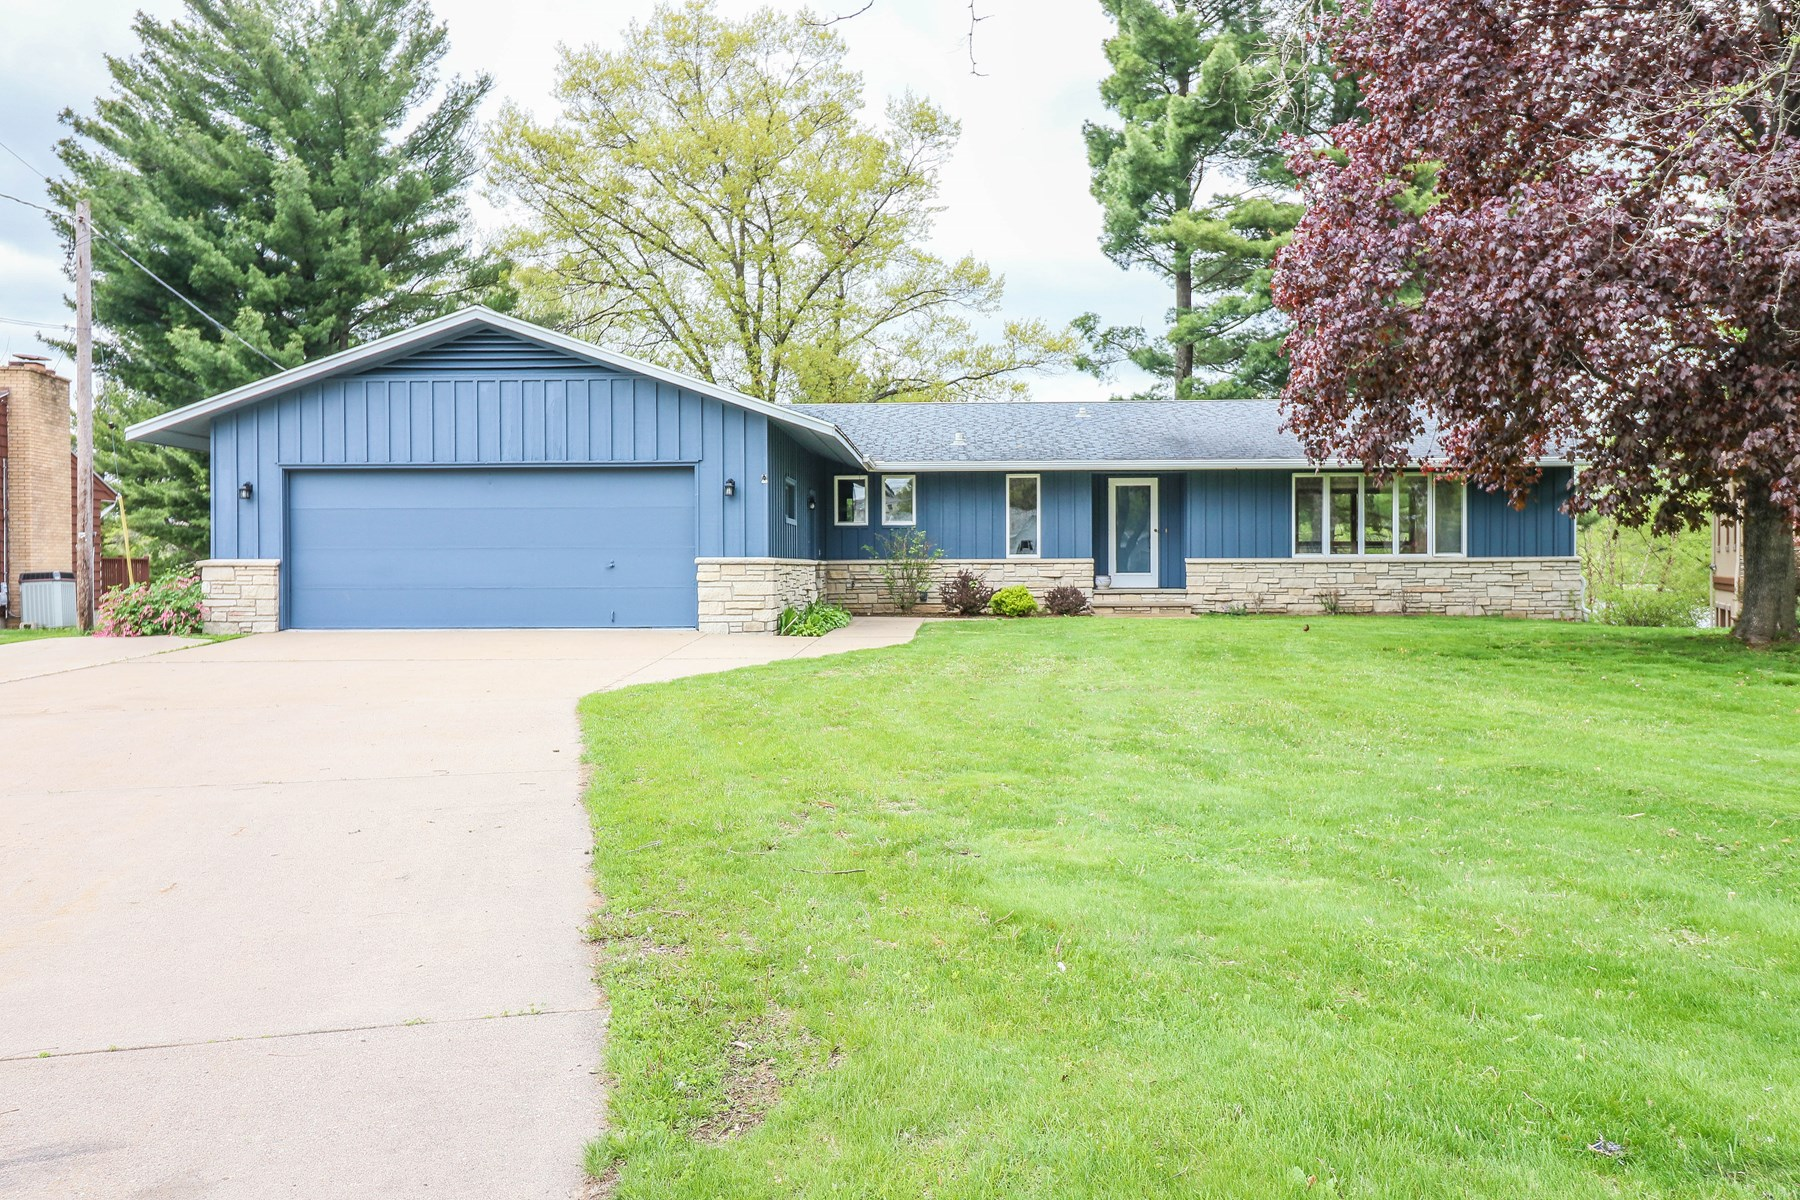 Home for Sale in Waupaca, WI With Views of Shadow Lake